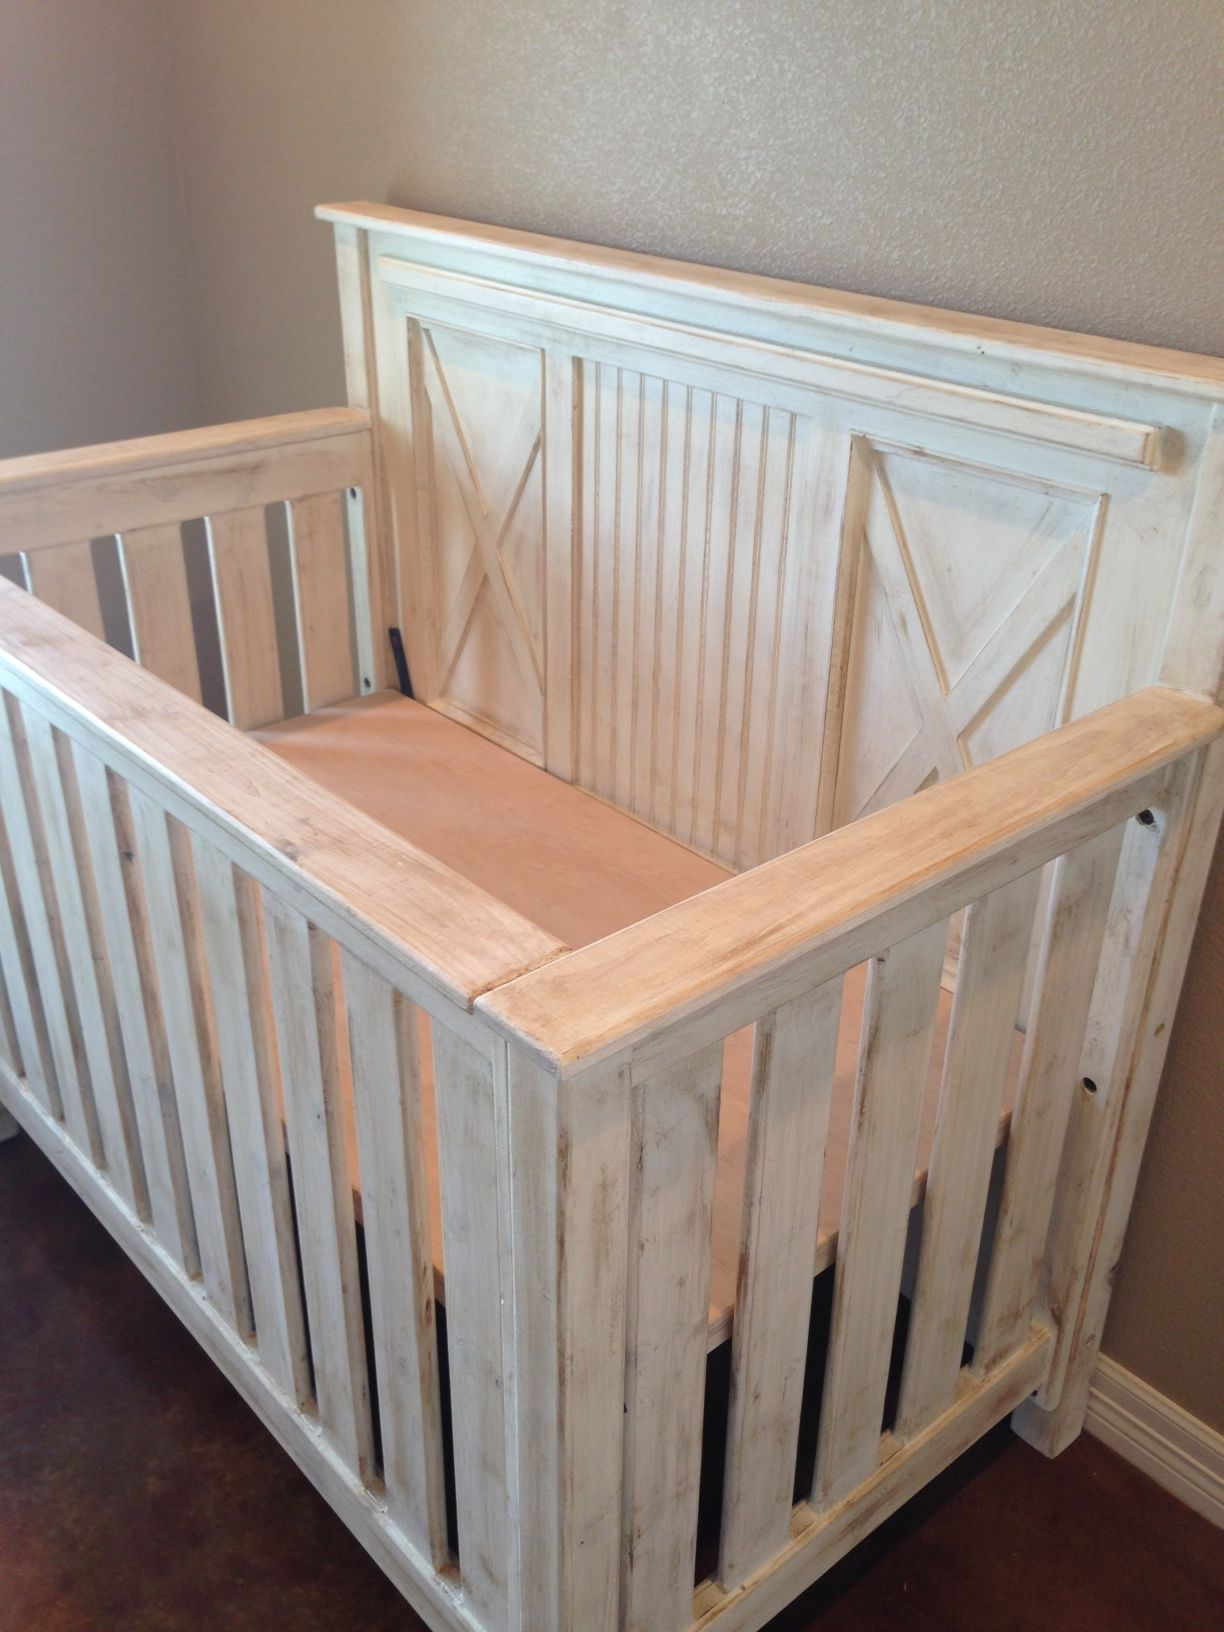 The Rustic Acre Baby Bed. \